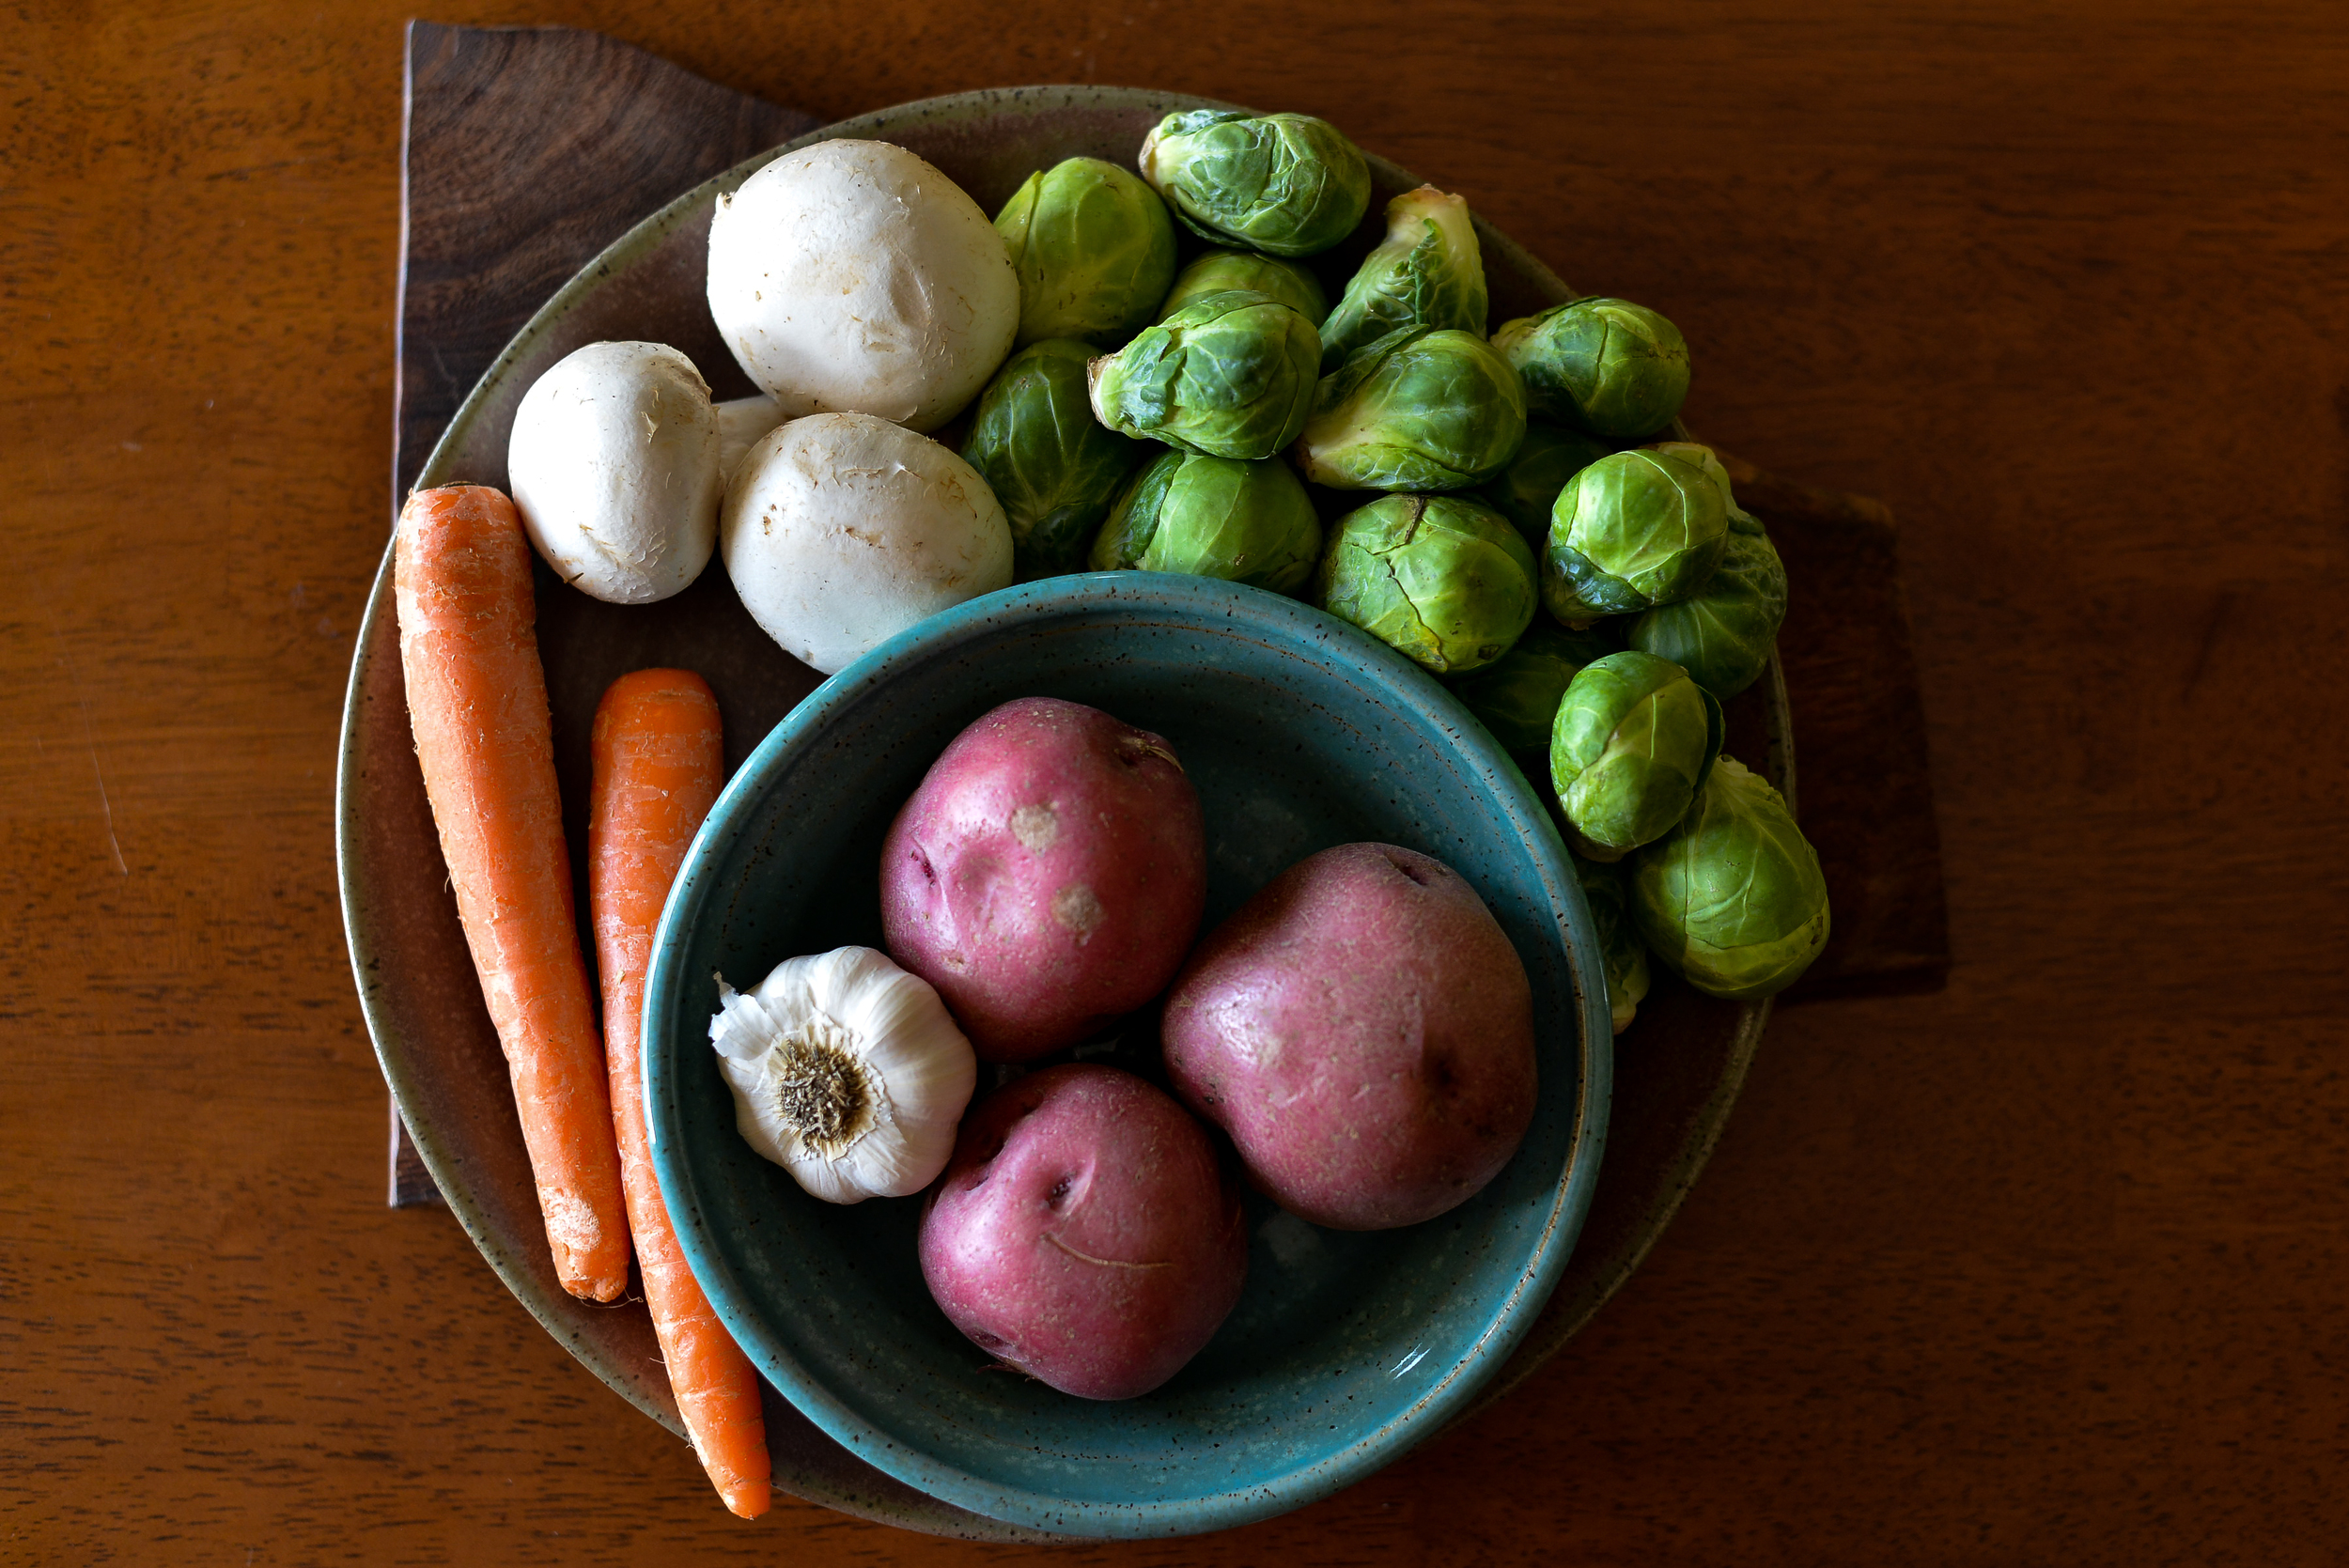 A plethora of amazingly beautiful, healthy vegetables